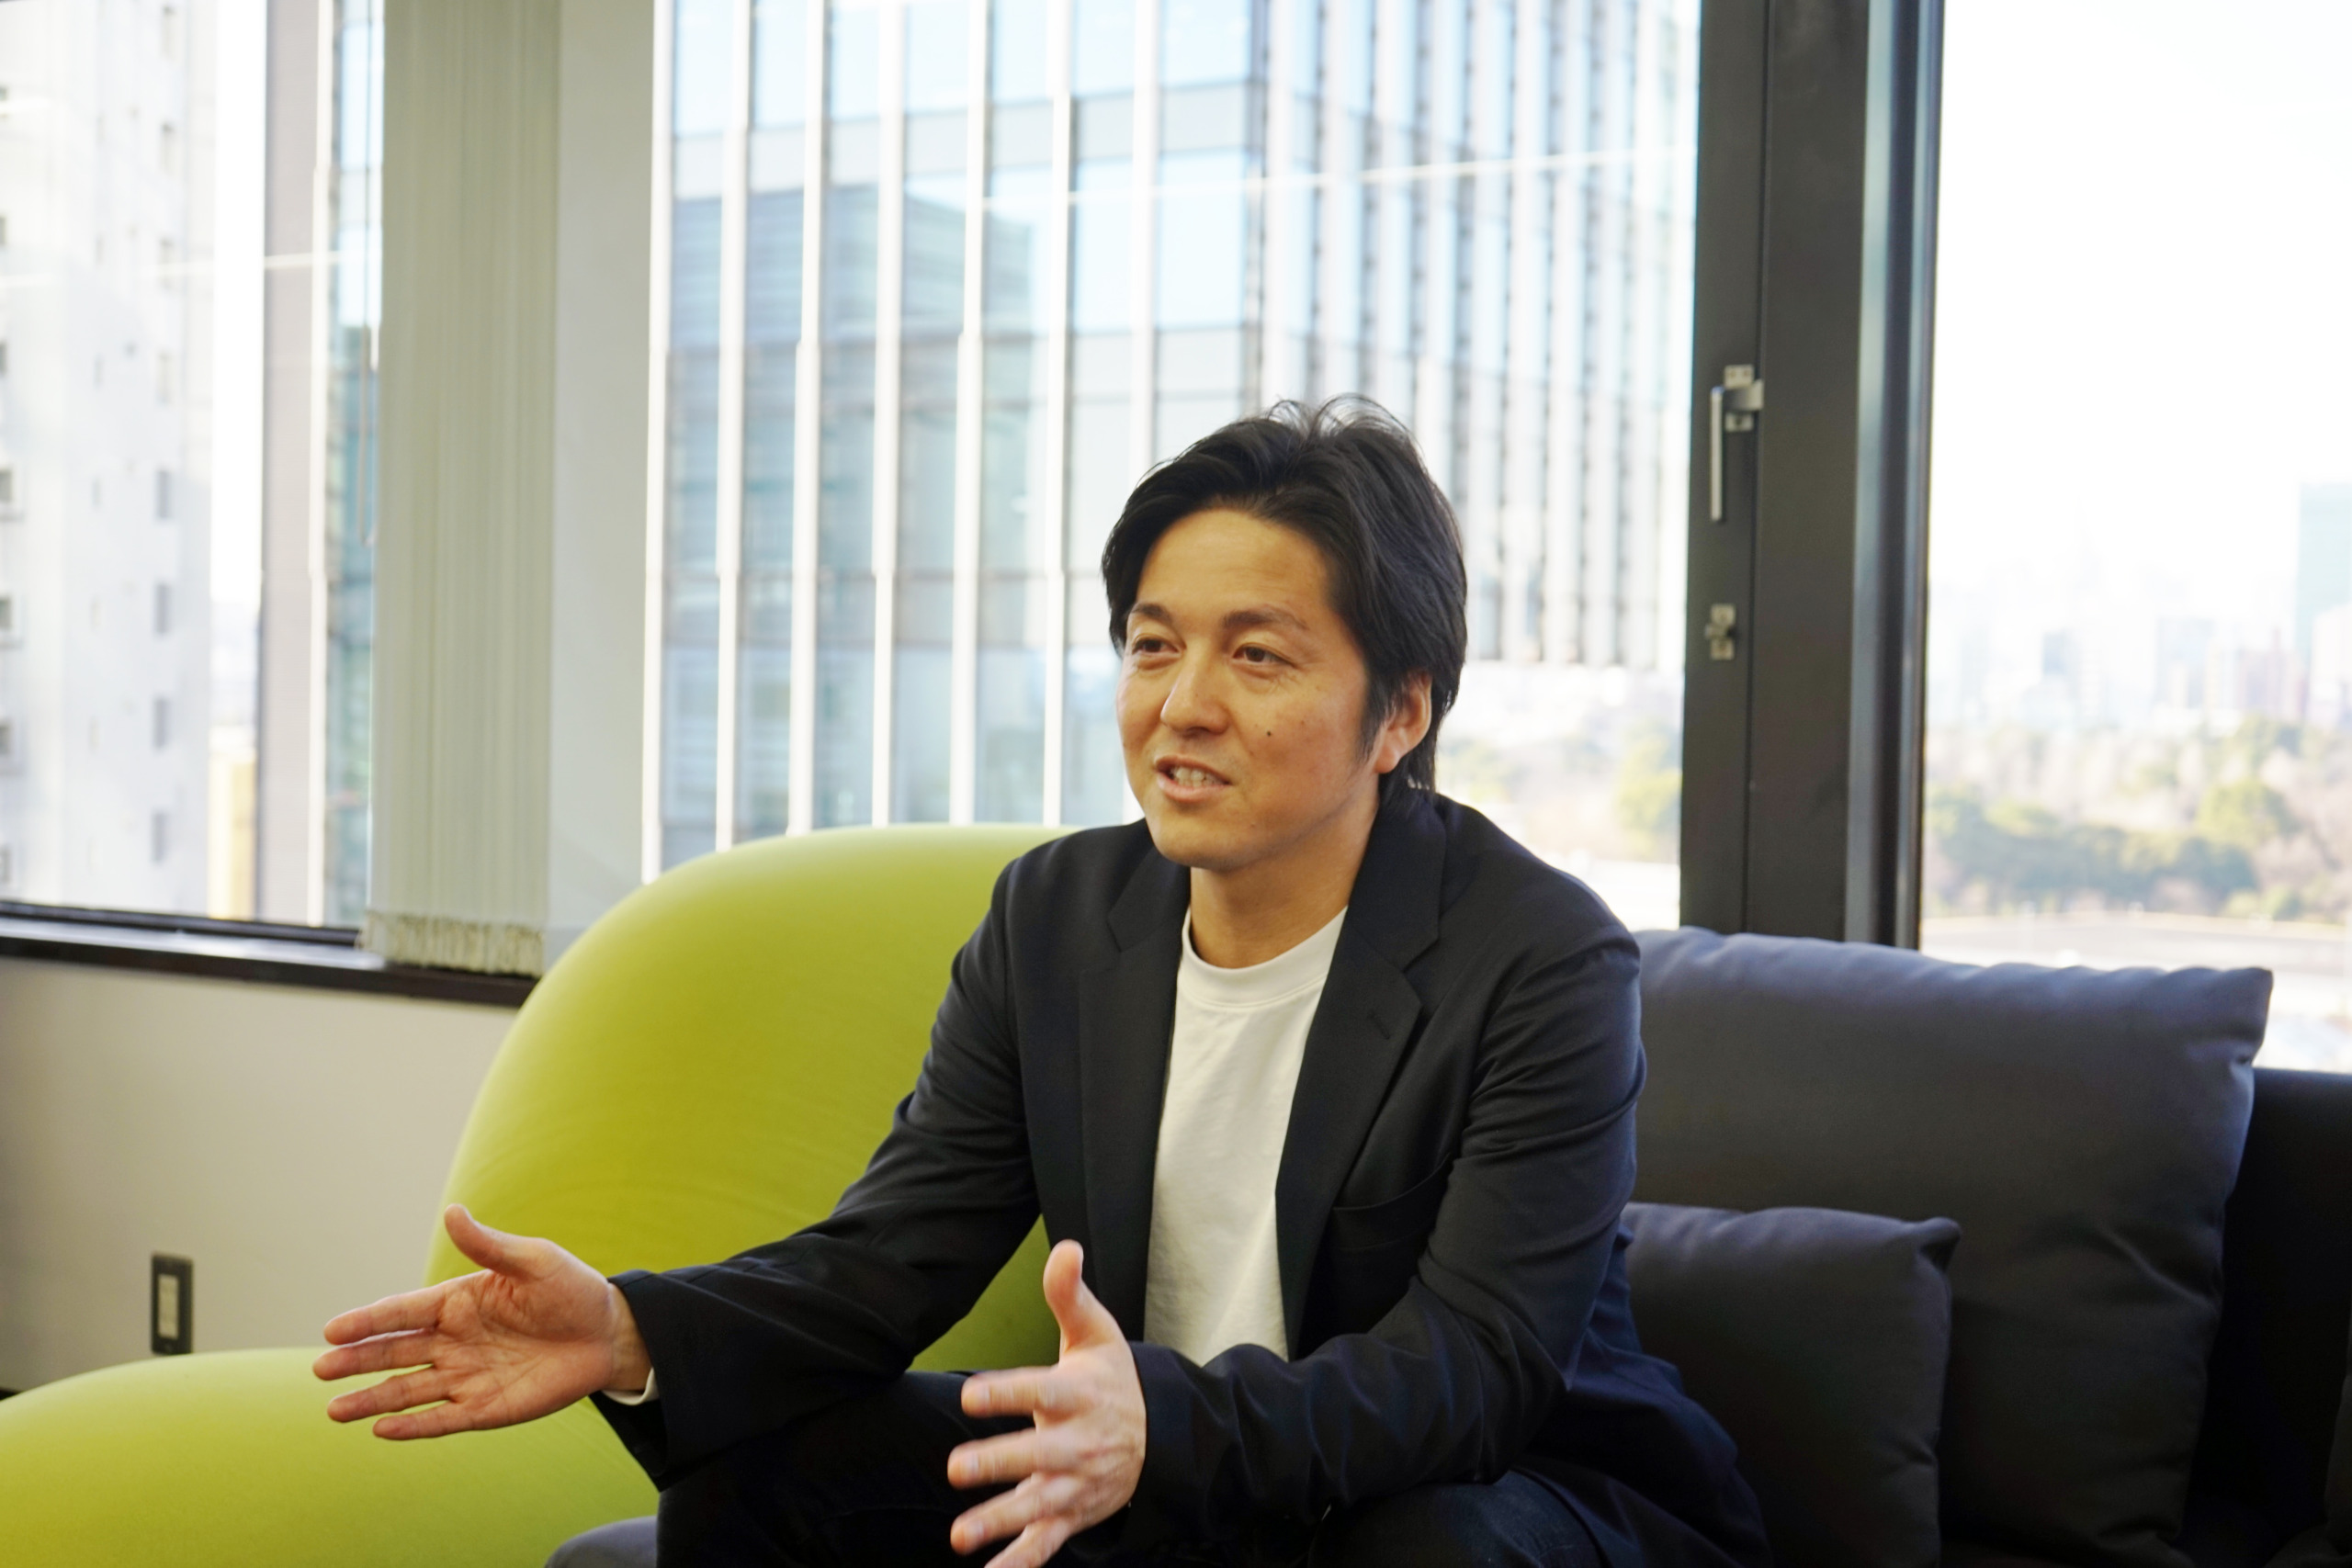 Funds代表取締役 藤田さん02